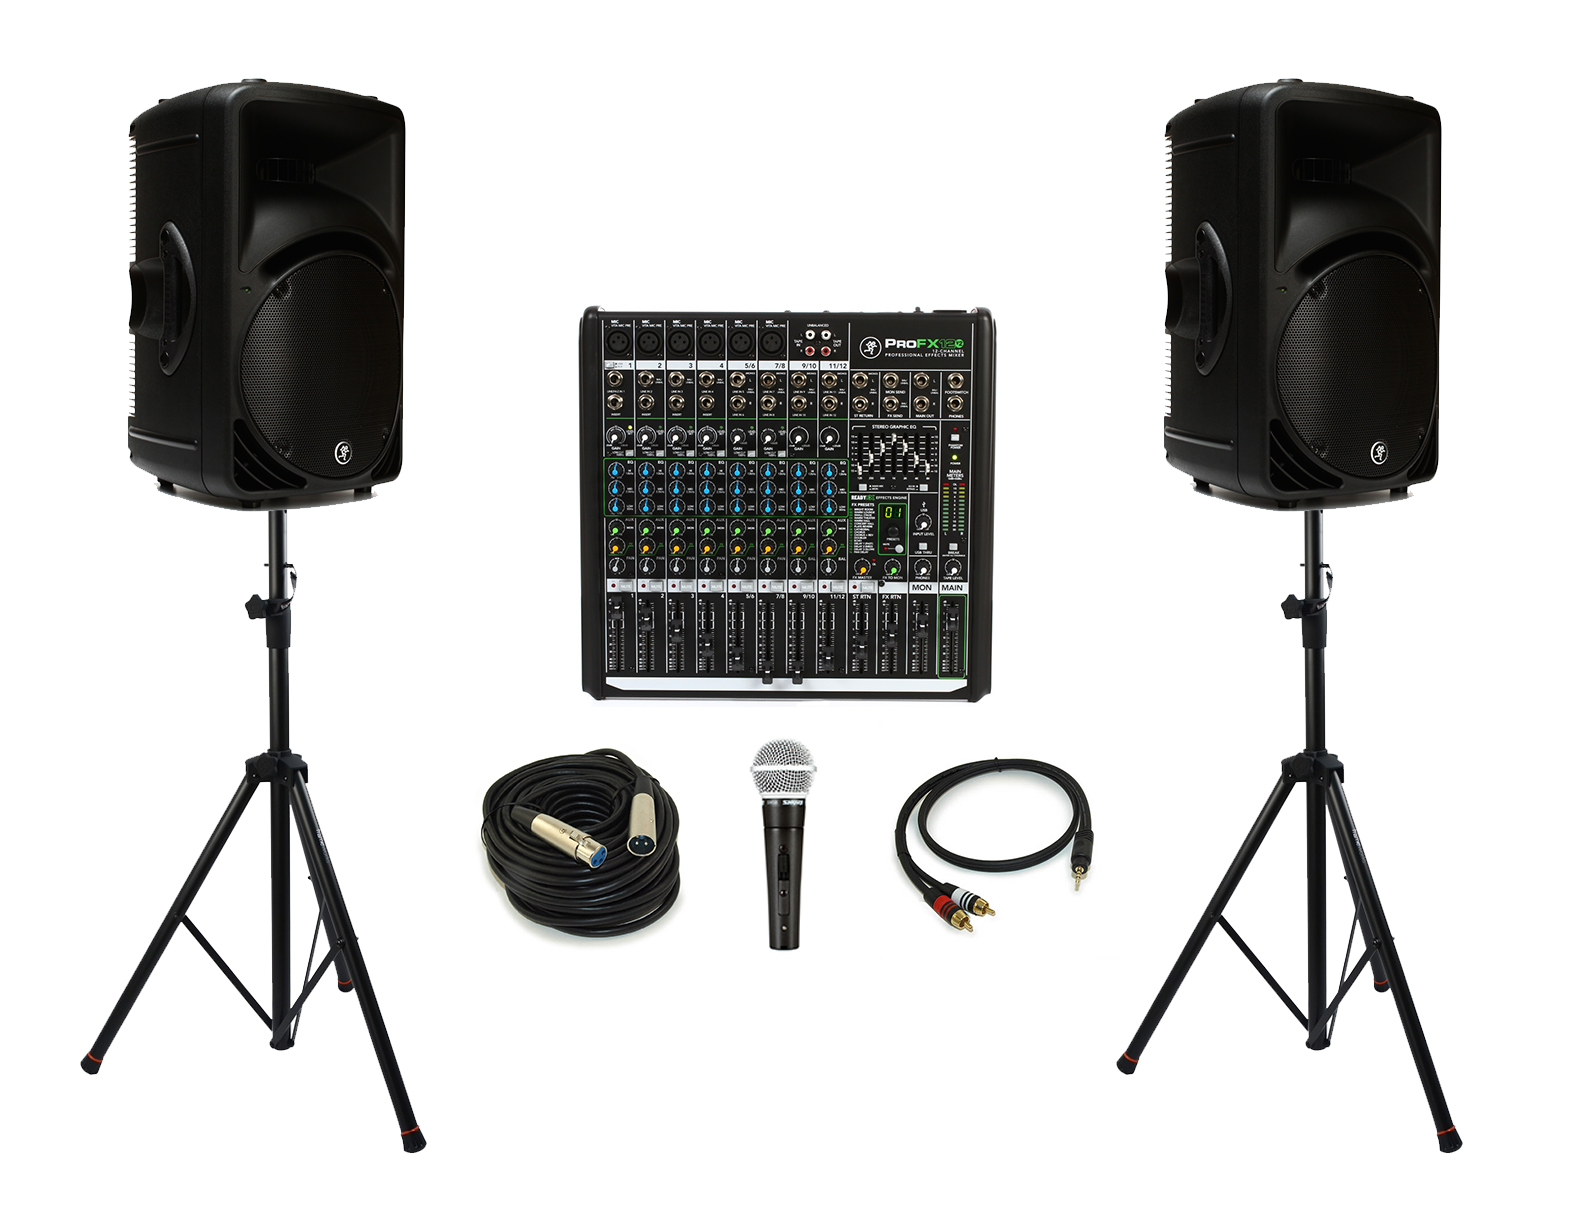 rent a pa system for events in kansas city  topeka  st